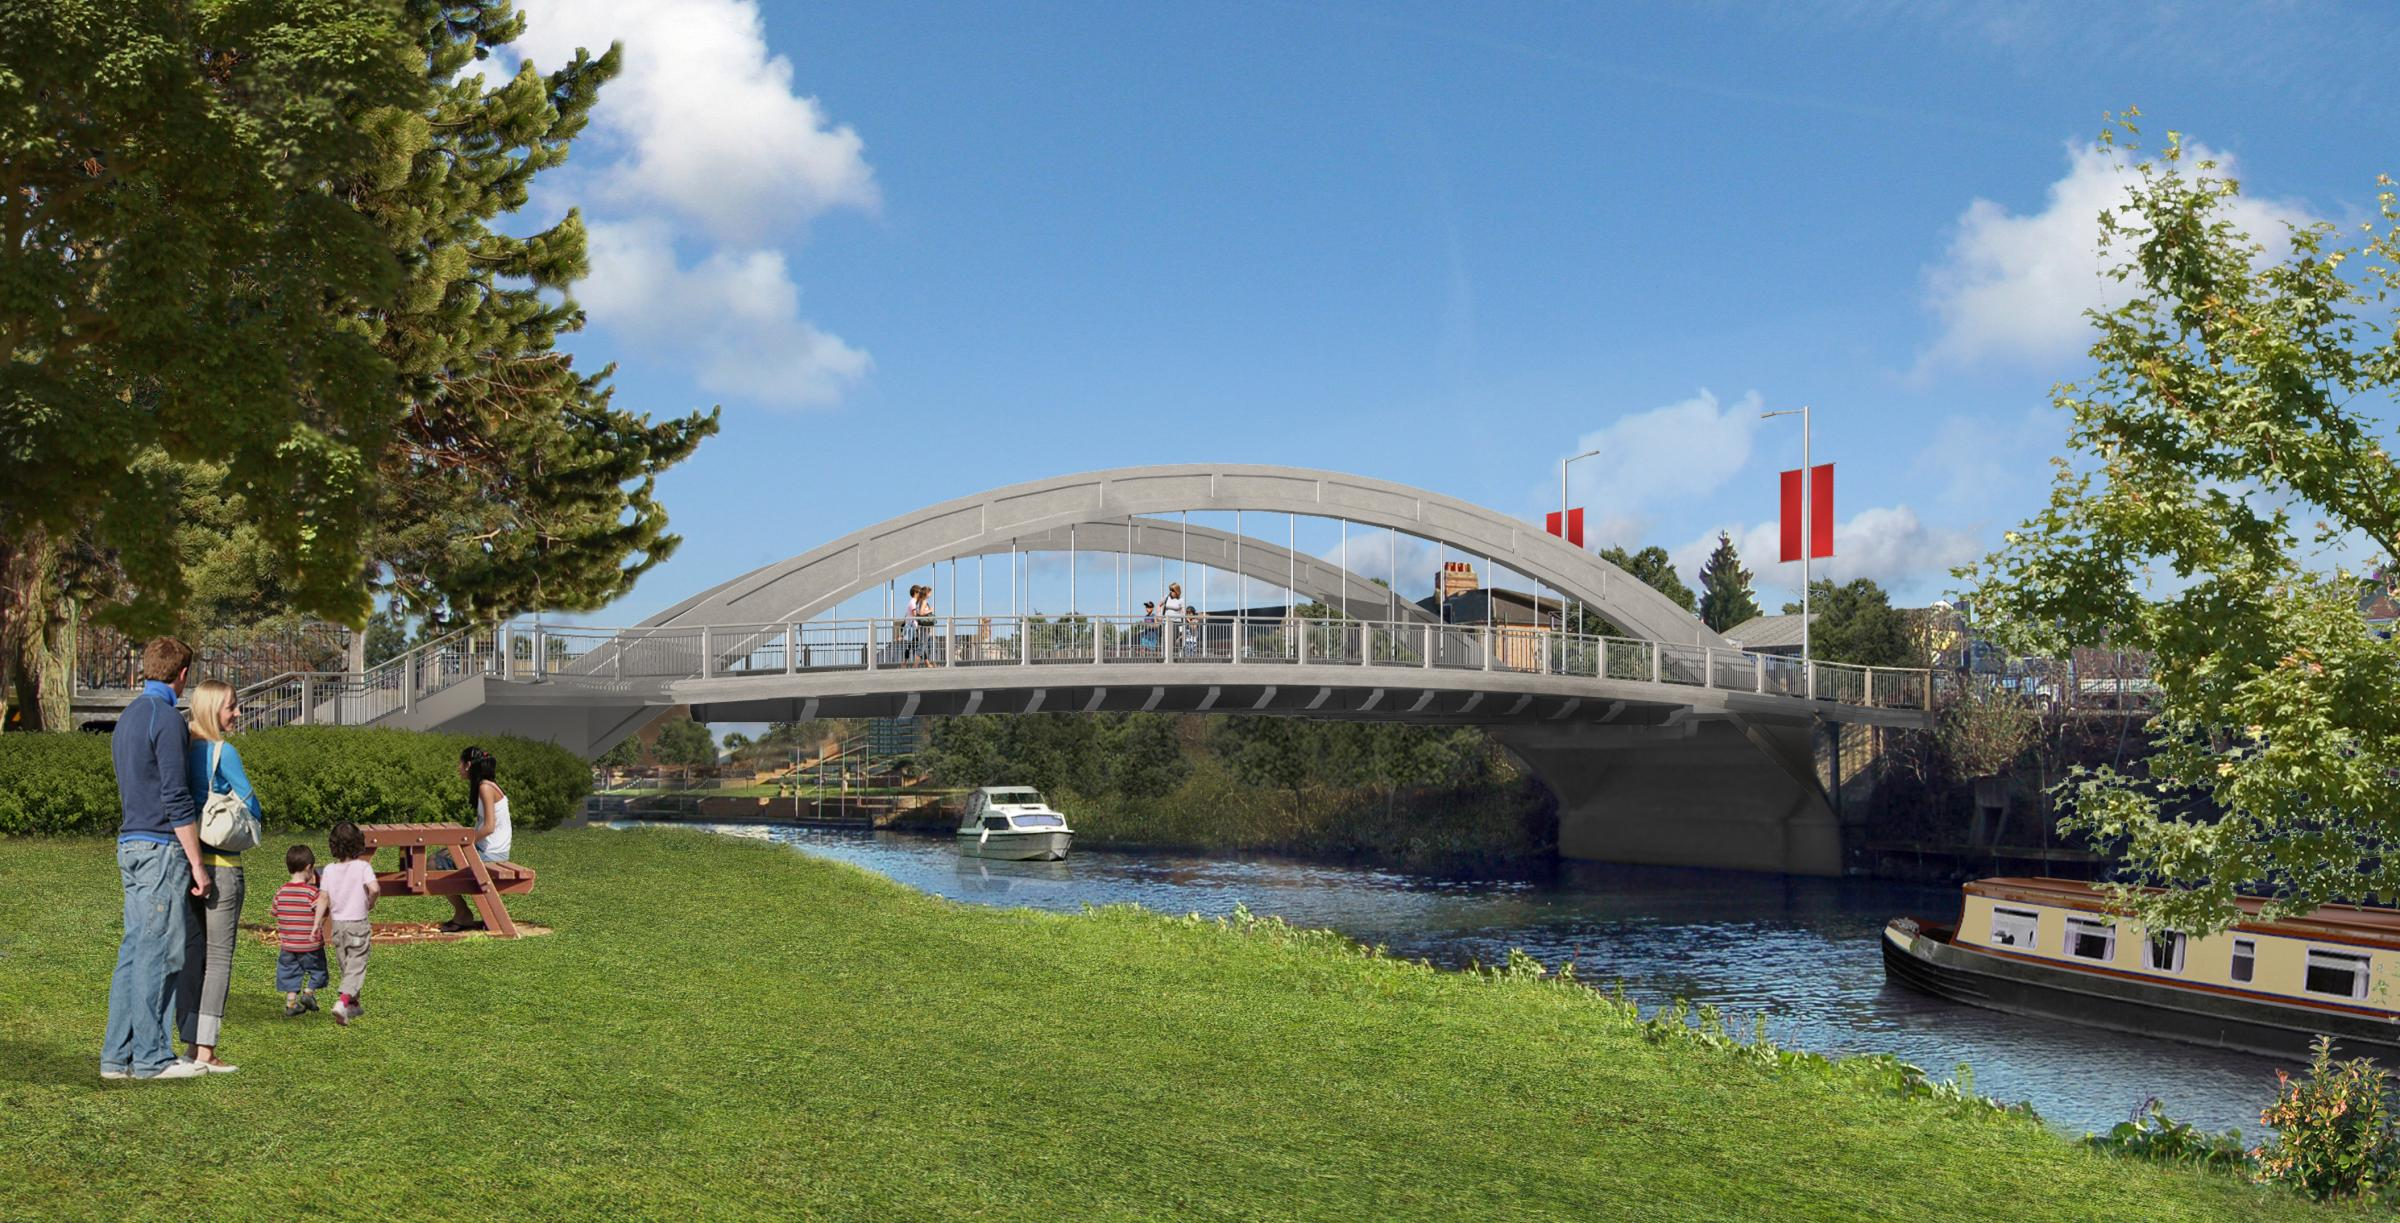 March 31: New date for Abbey Bridge completion announced